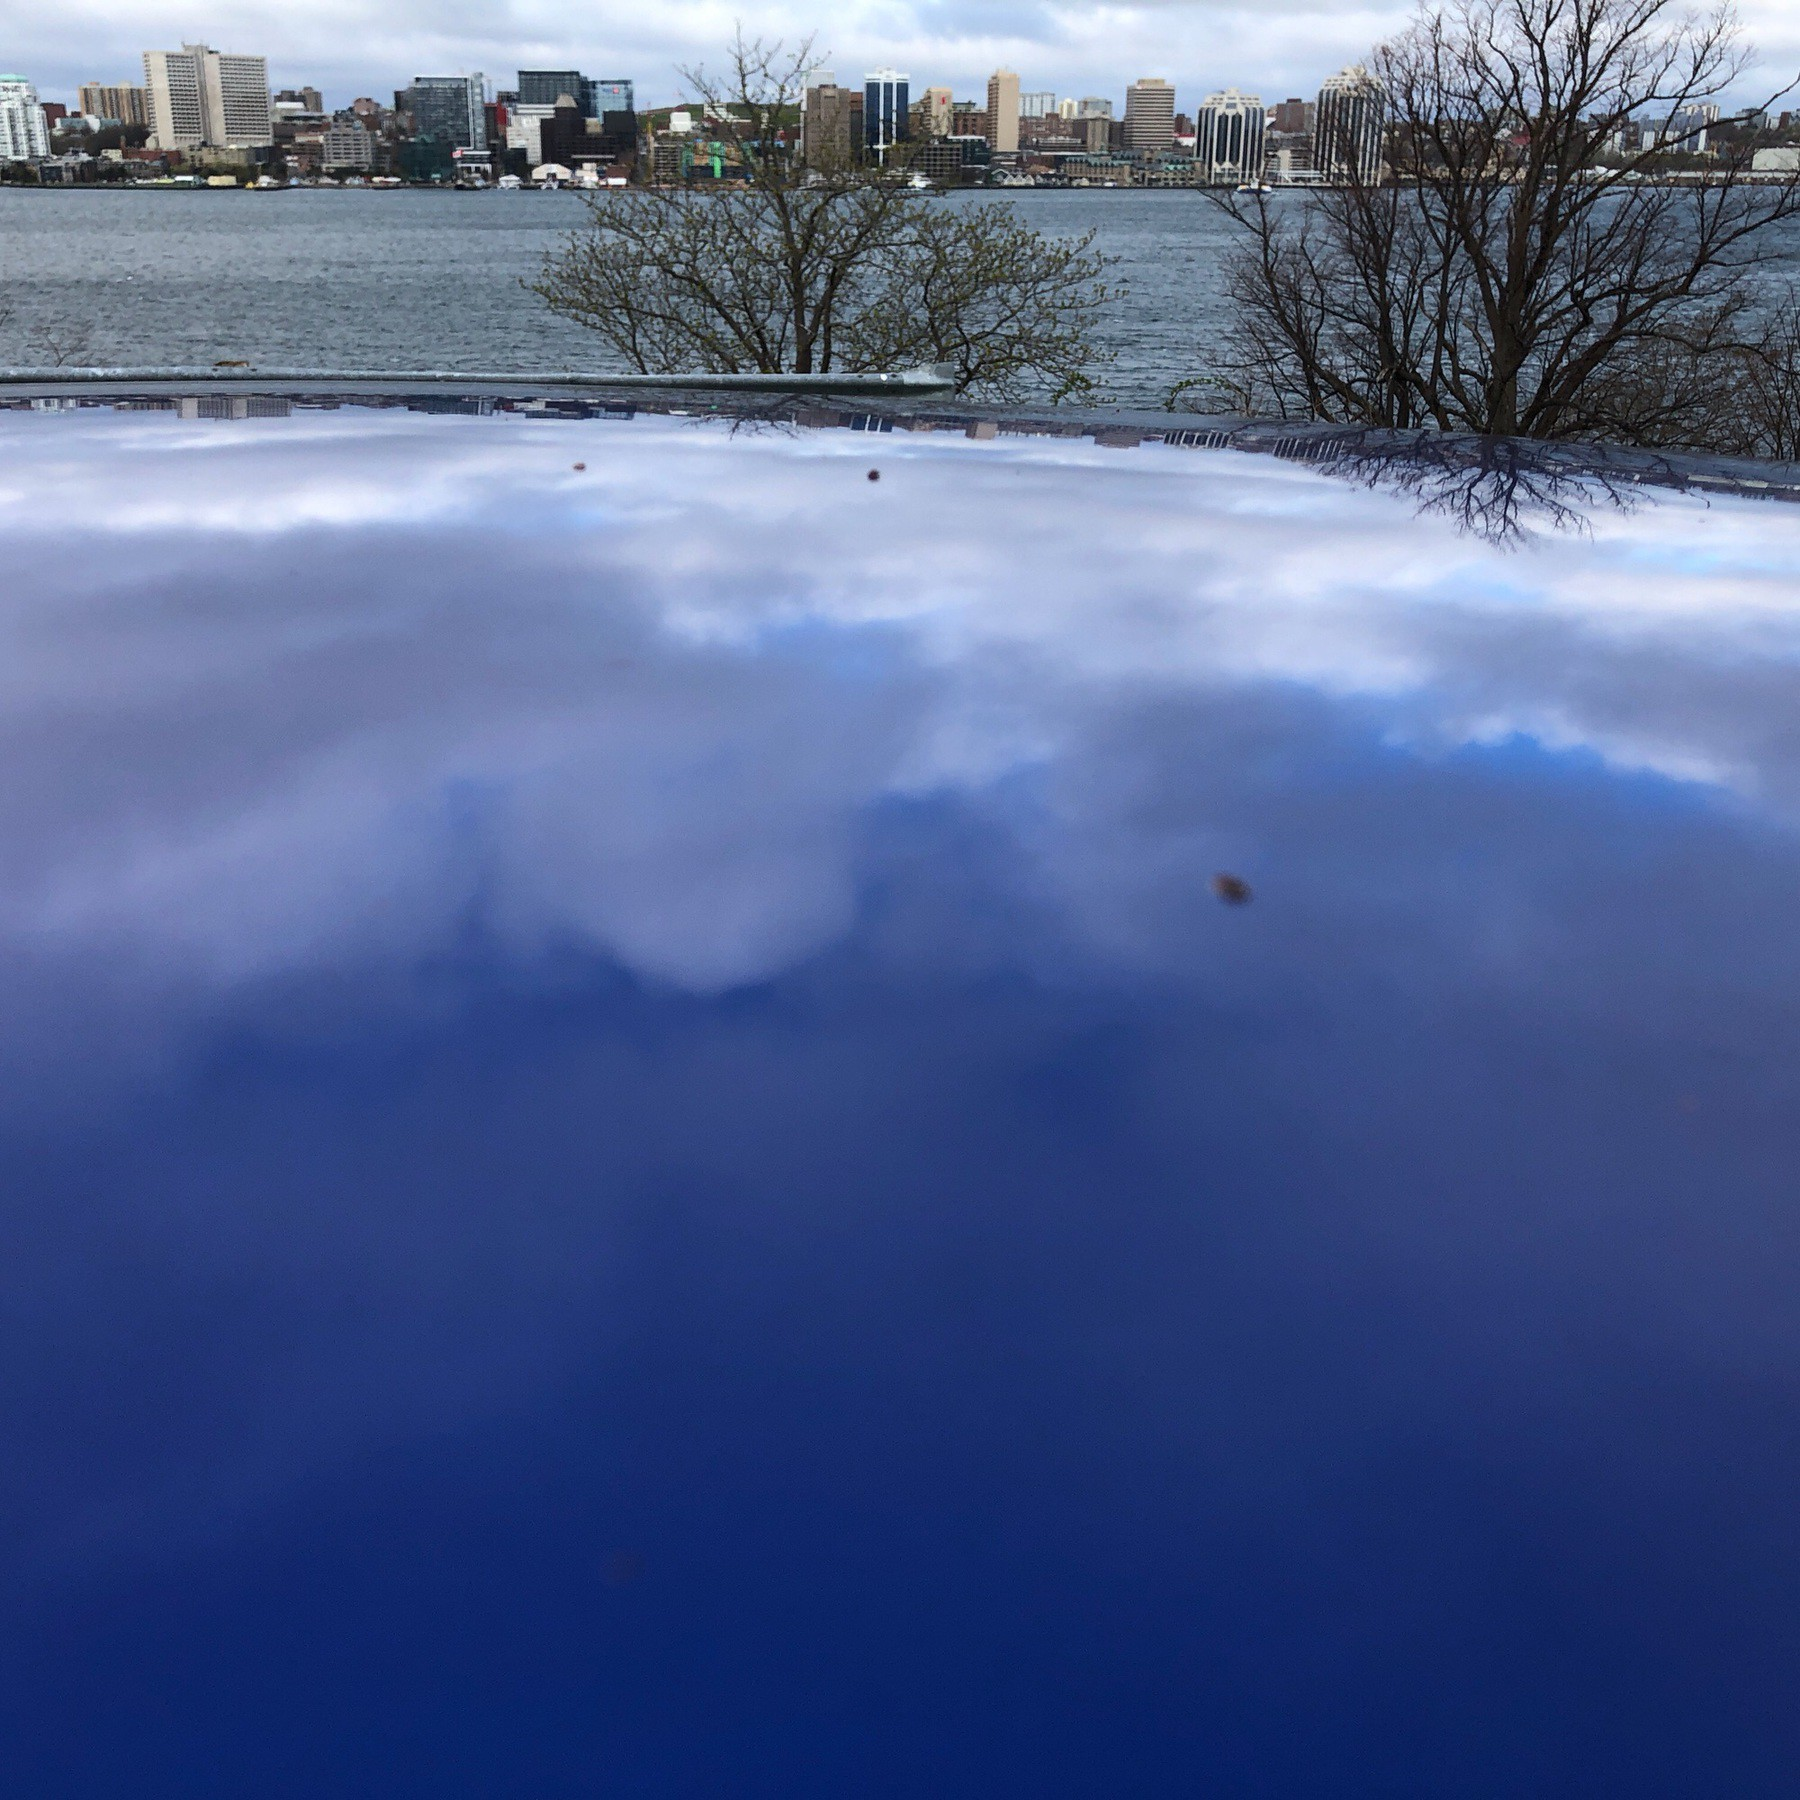 Clouds reflected in car roof.